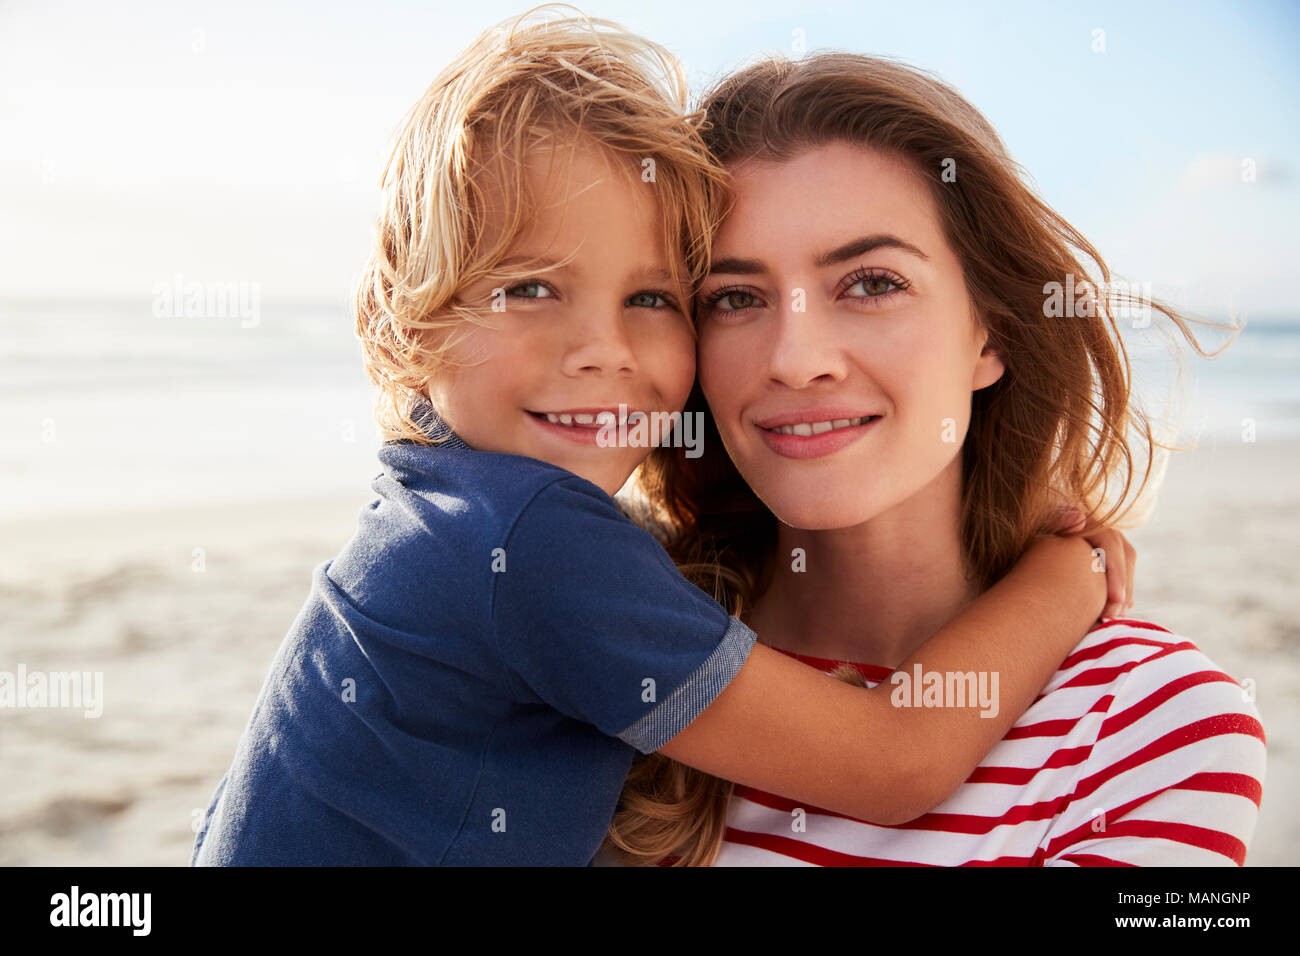 Portrait Of Mother Hugging Son On Summer Beach Vacation - Stock Image